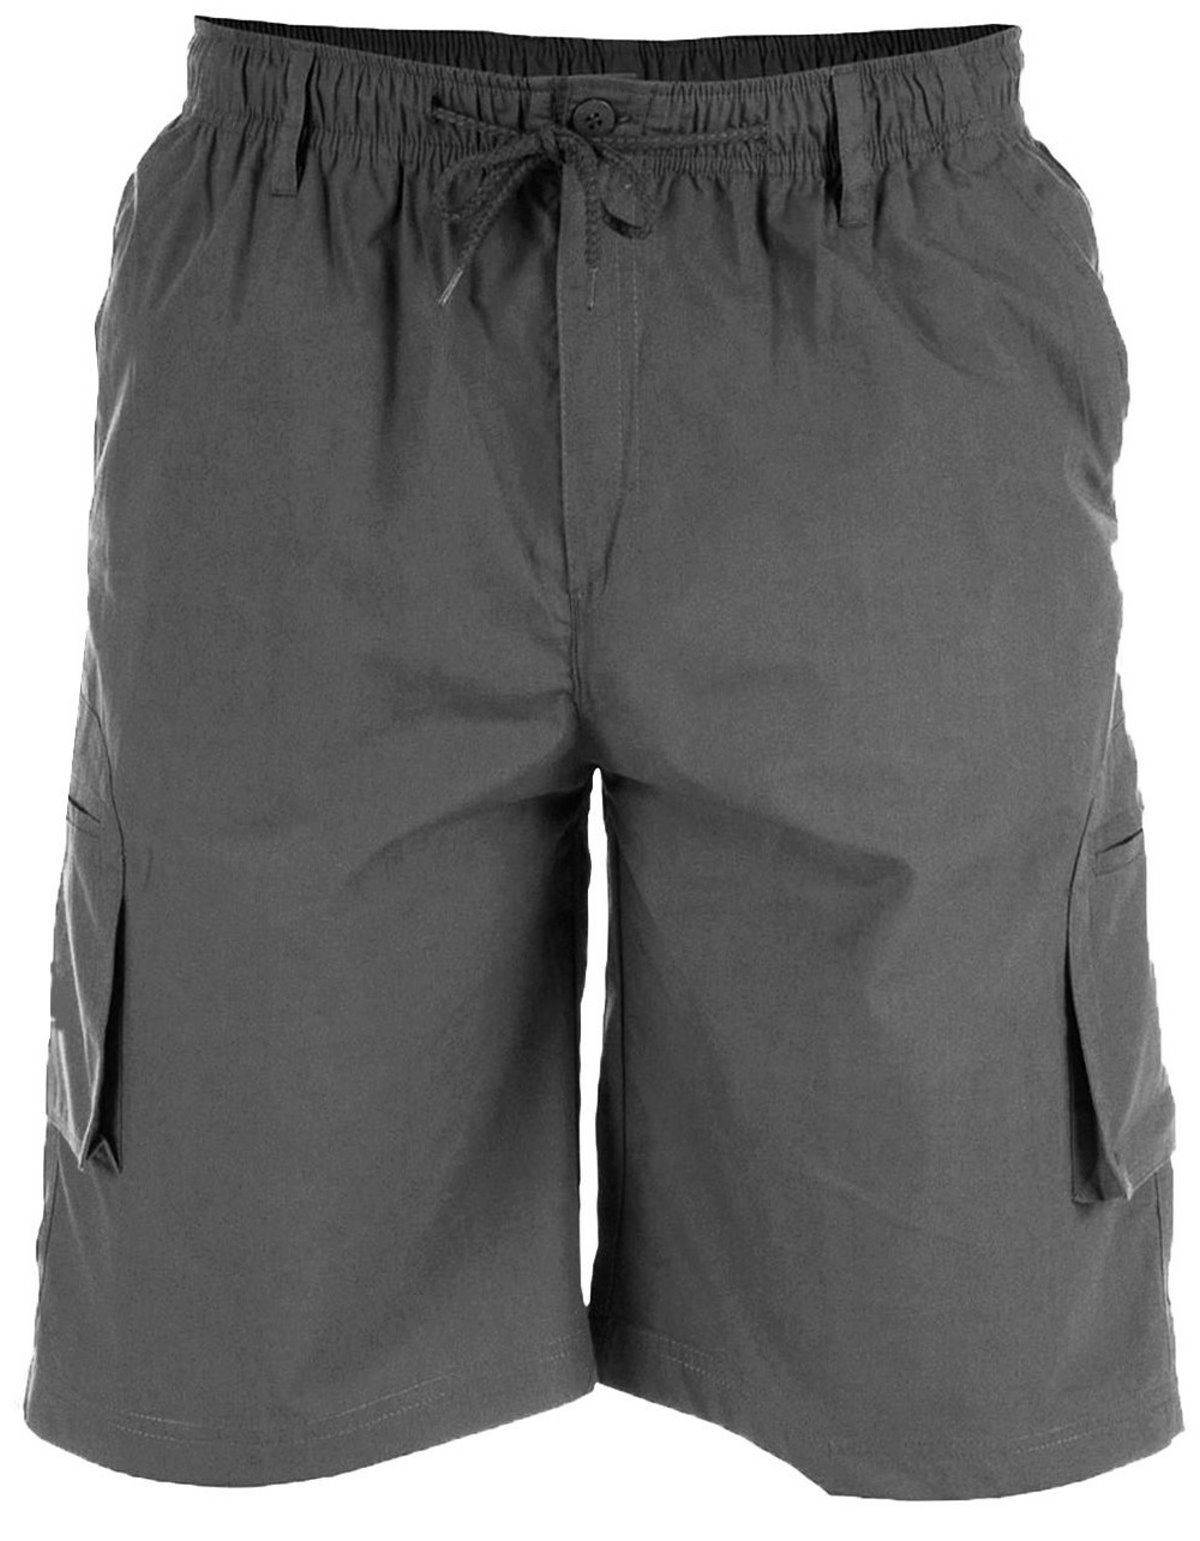 Buy KingPlusSports Men's Plus Size Cotton Loose Big and Tall Waist Cargo Shorts and other Cargo at venchik.ml Our wide selection is elegible for free shipping and free returns.4/5(78).